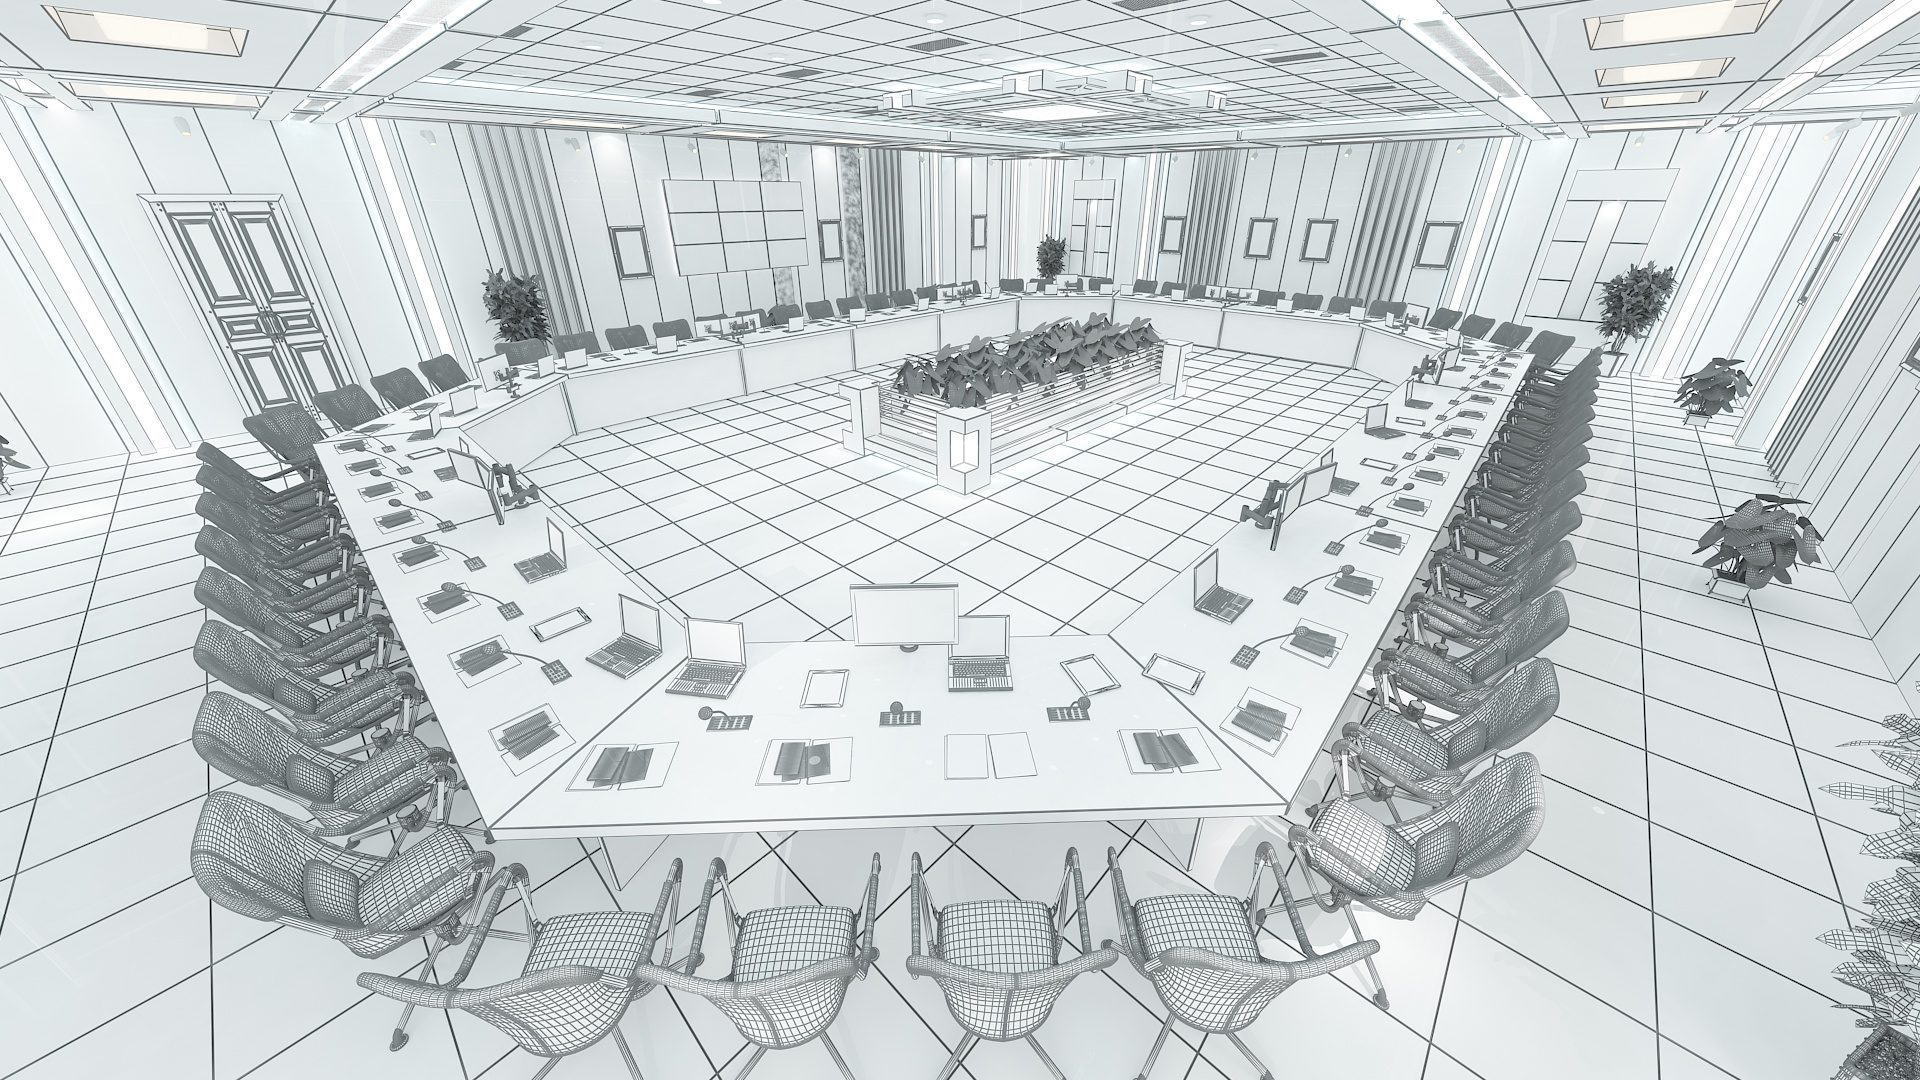 meeting room 1 3d model 3ds max dxf dwg 288117